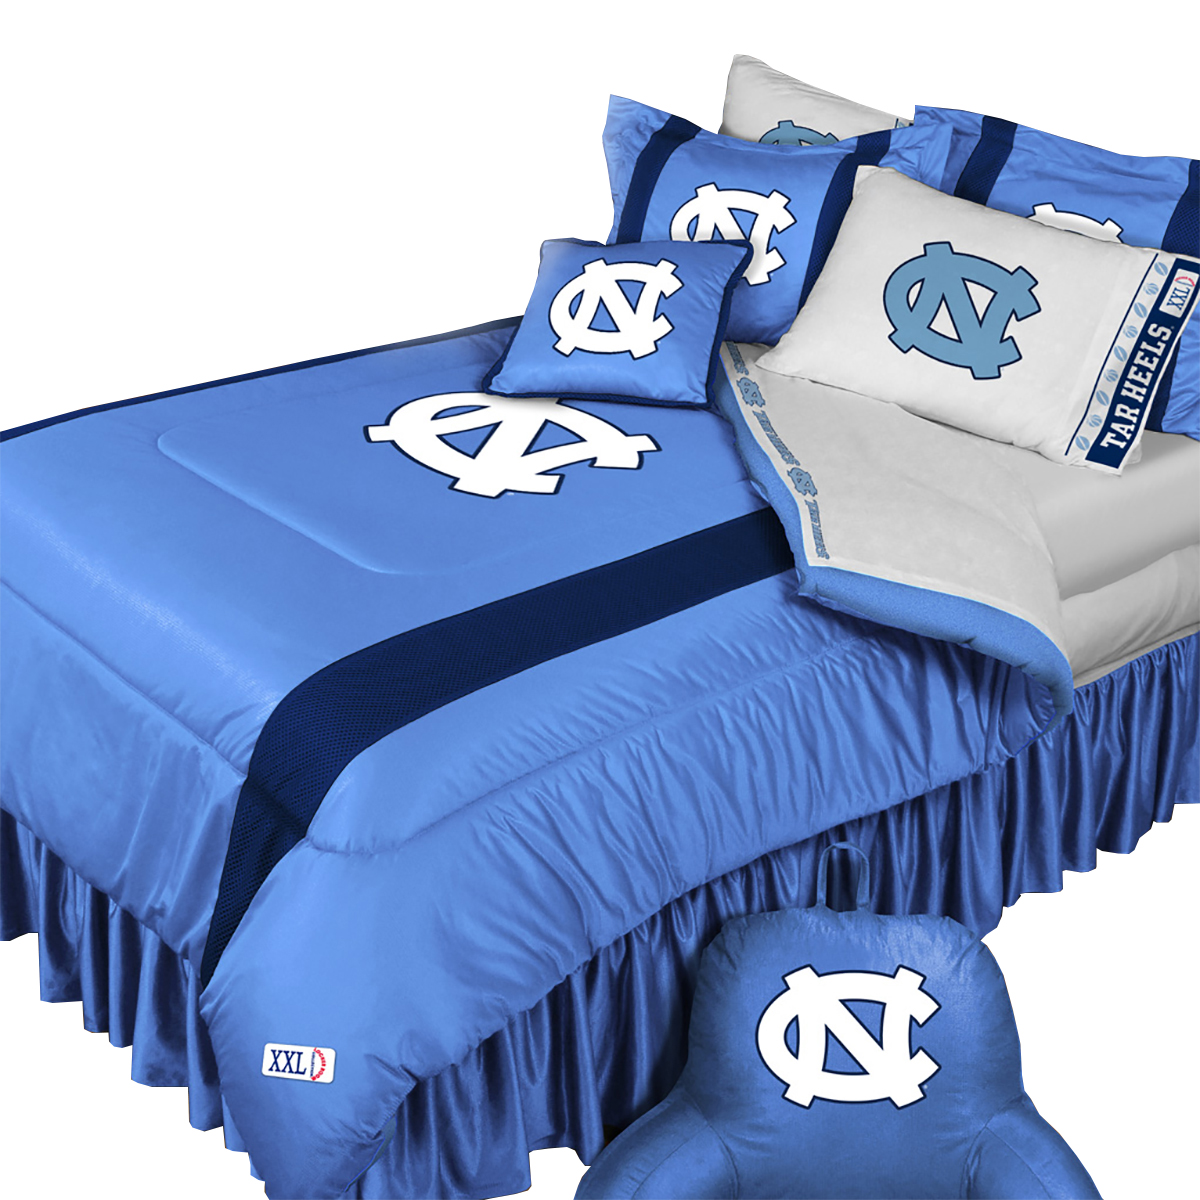 North Carolina Tar Heels Queen-Full Comforter Set